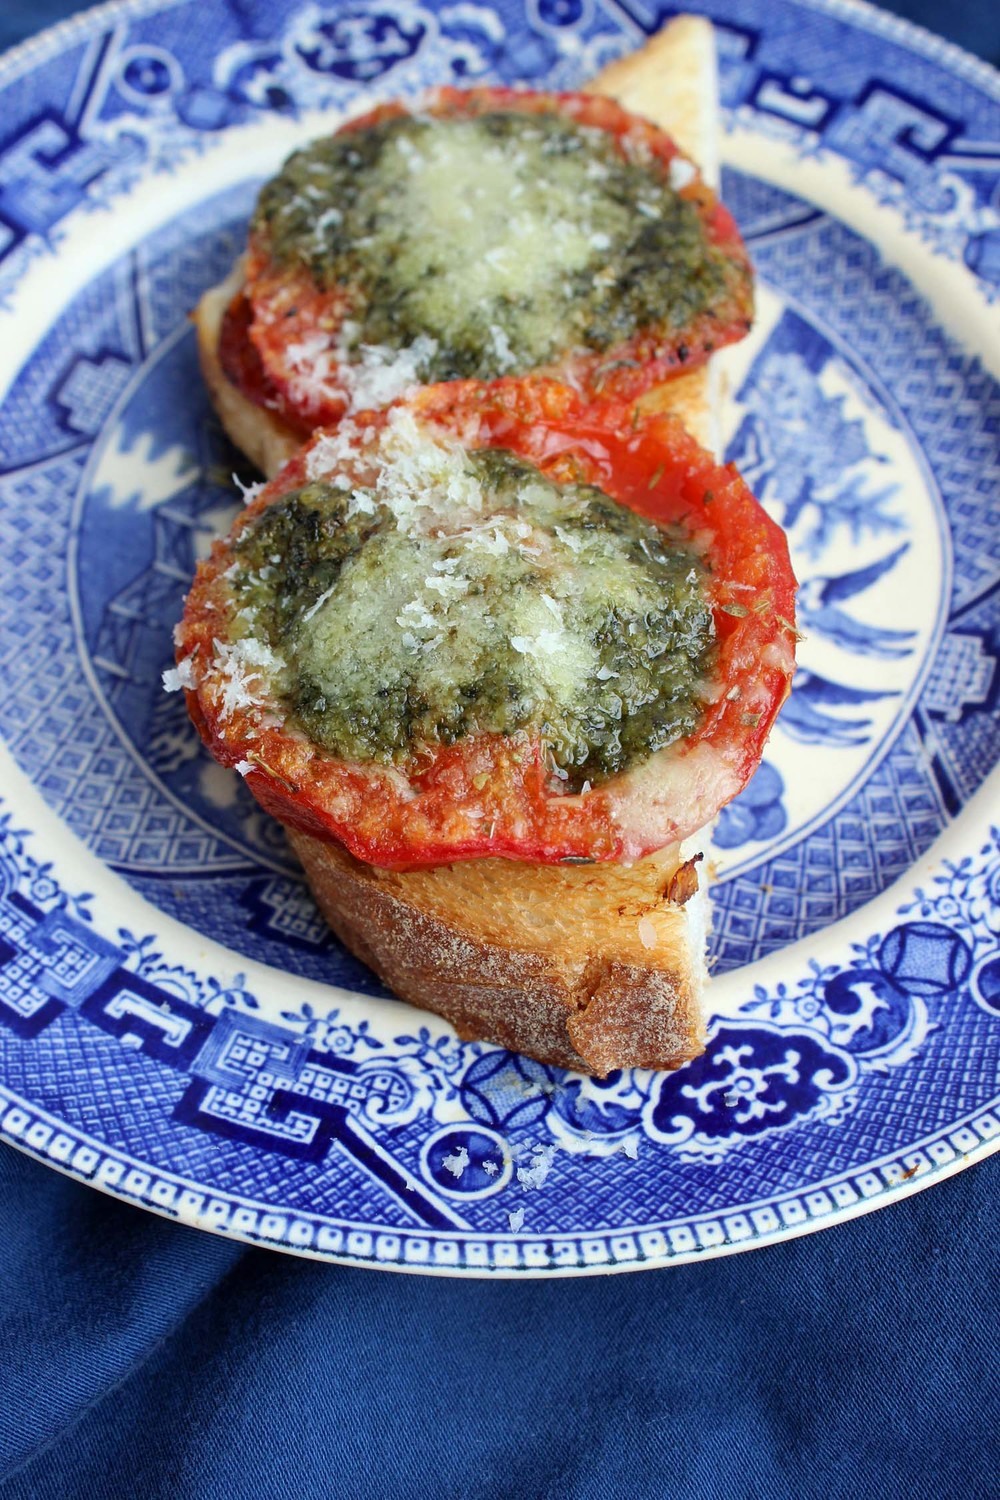 Tomatoes with Pesto | Image: Laura Messersmith